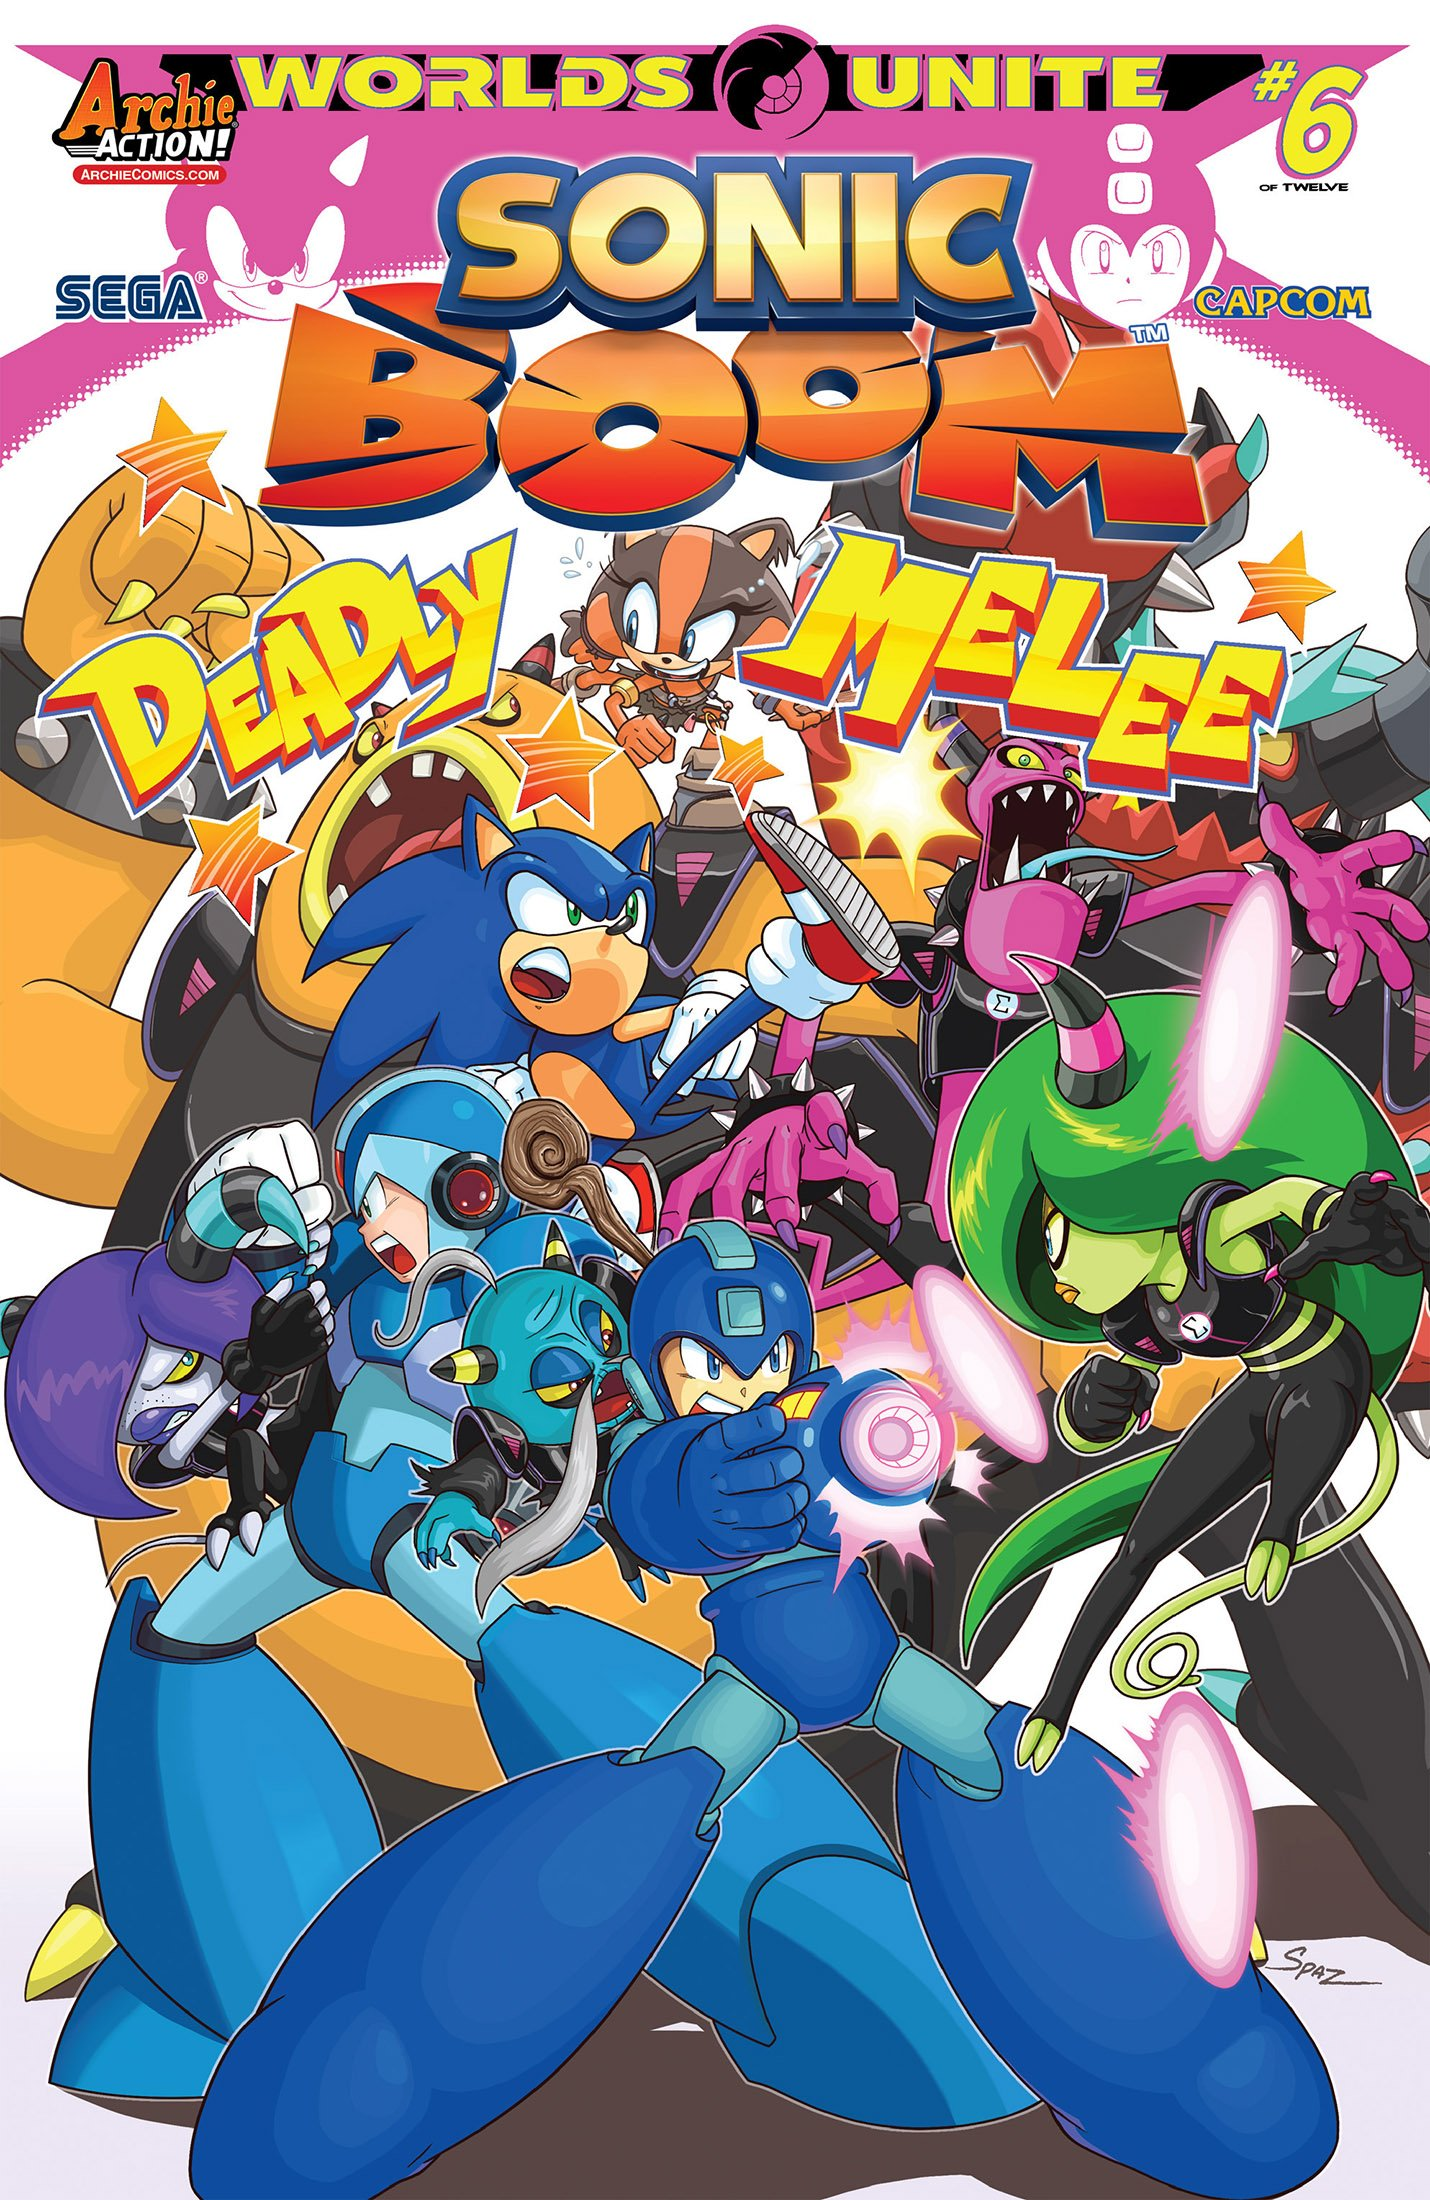 Sonic Boom 009 (August 2015)